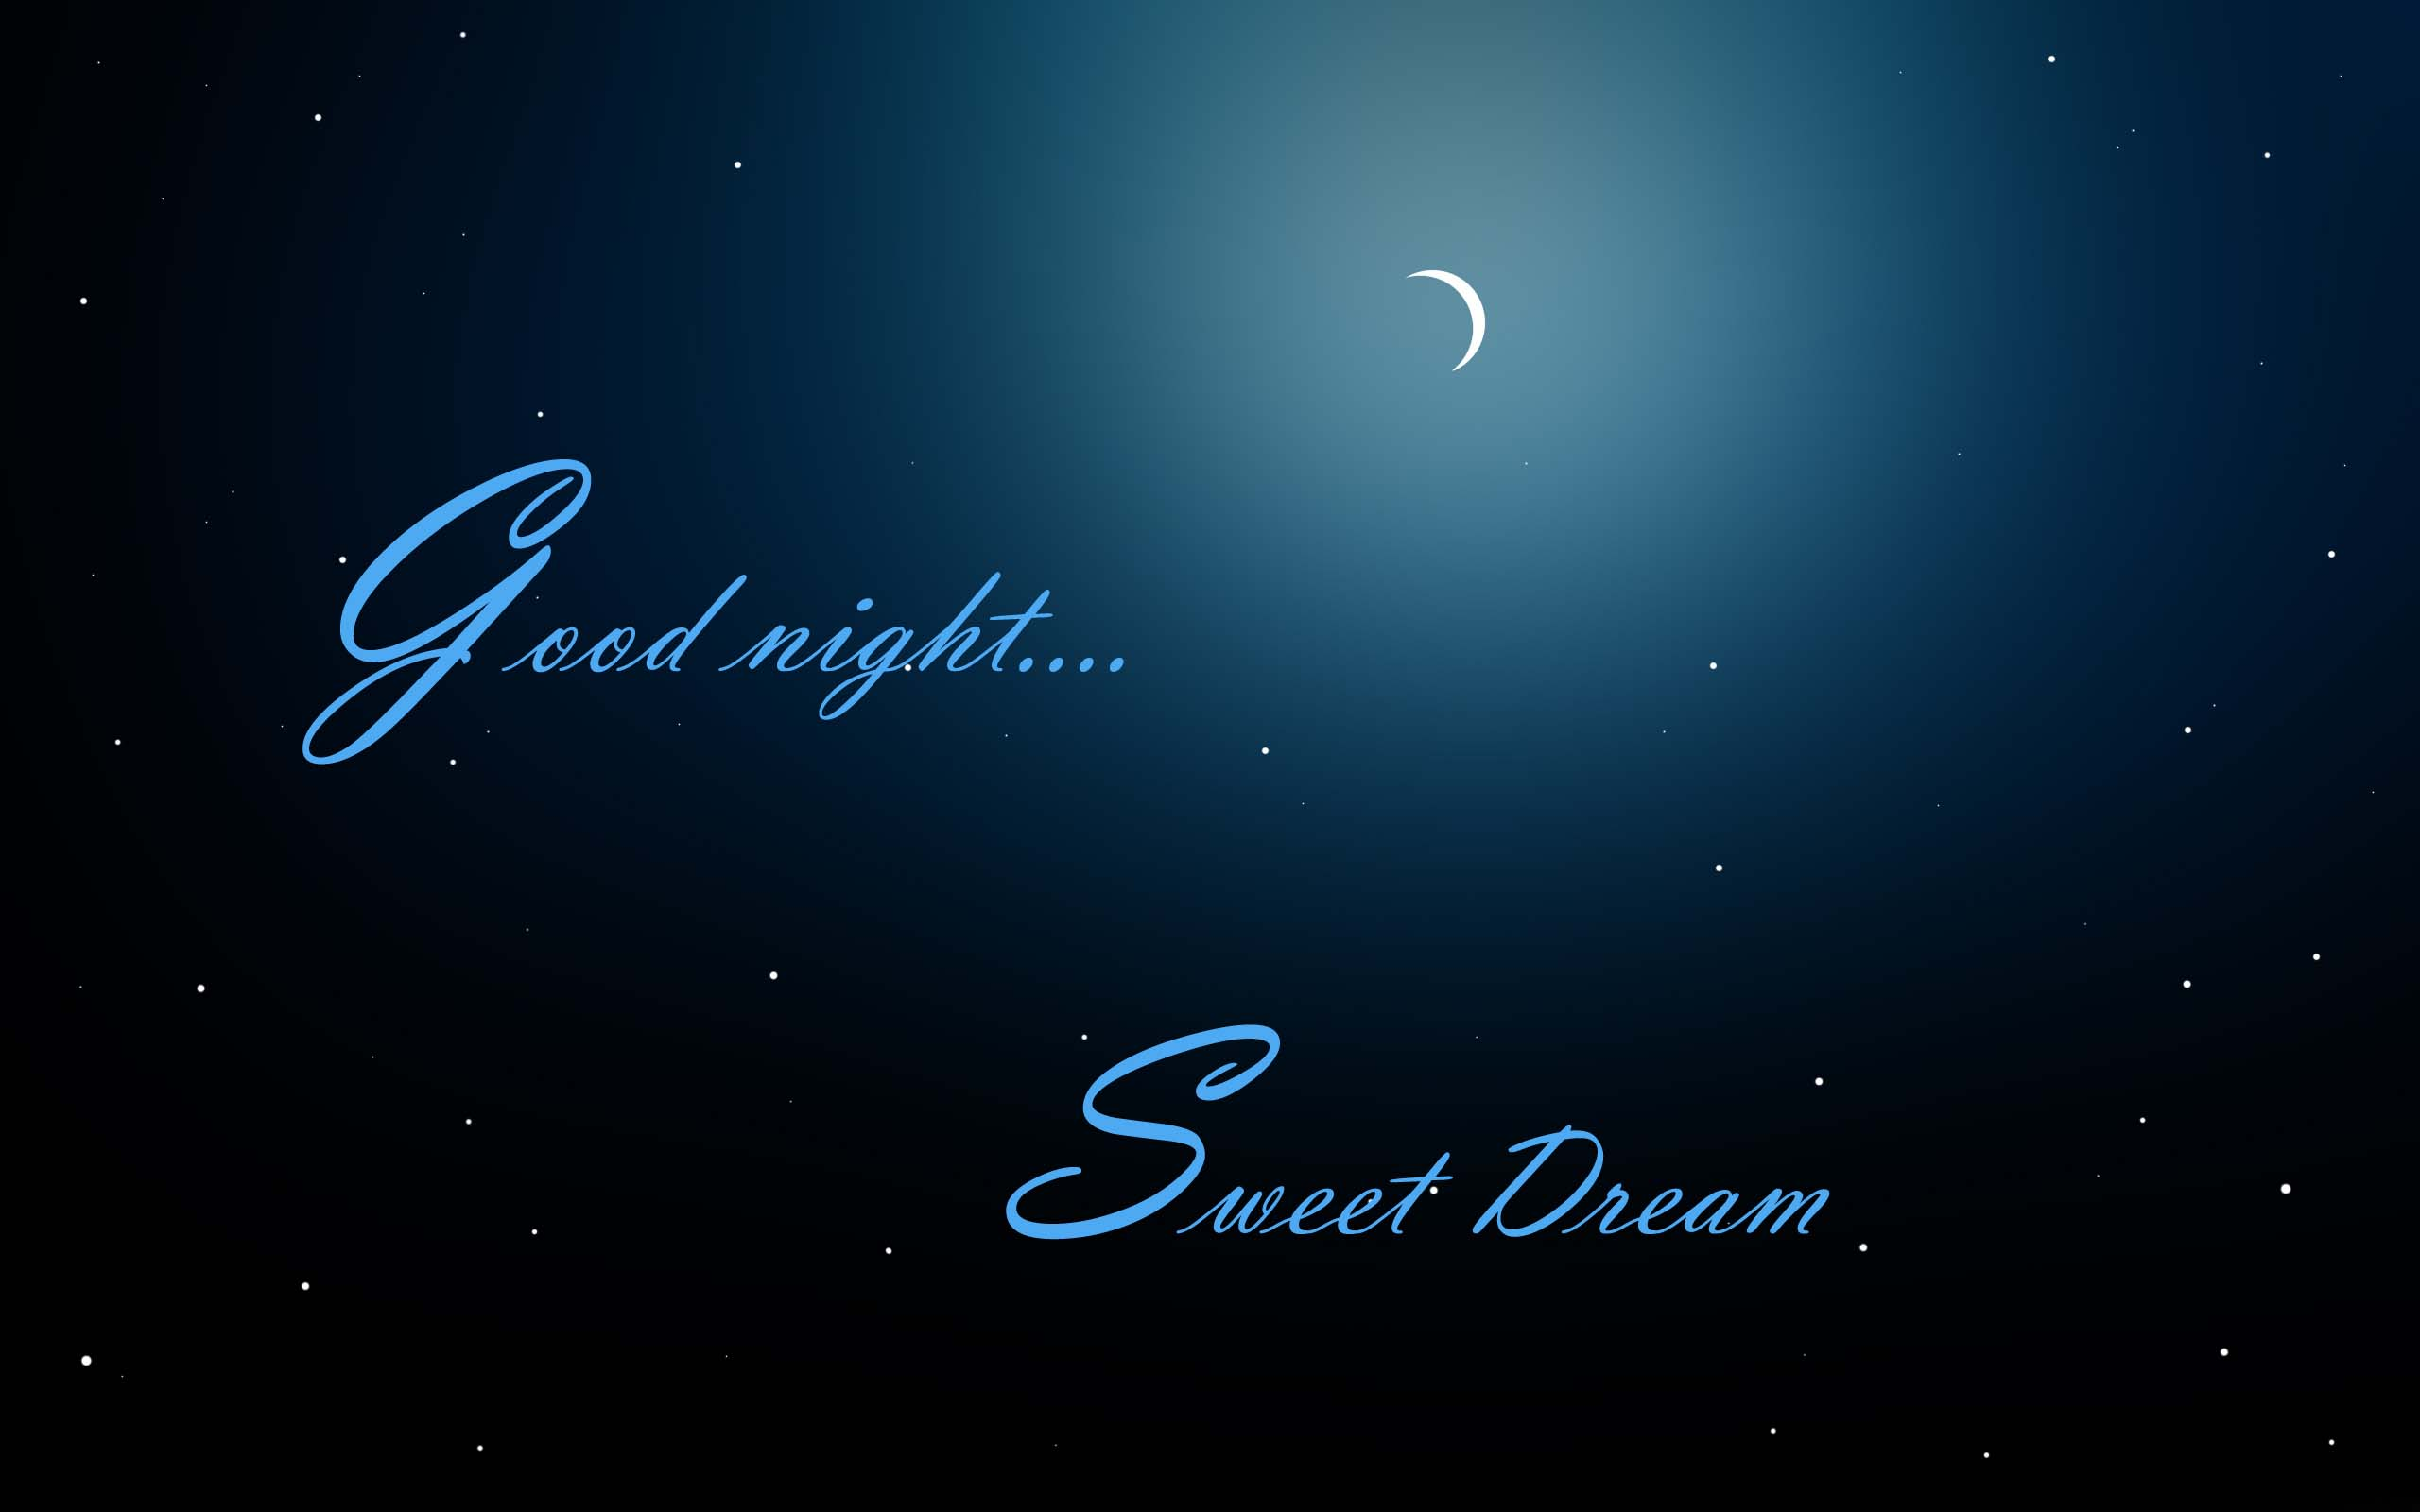 Good Night Sweet Dreams Wallpaper & Pictures